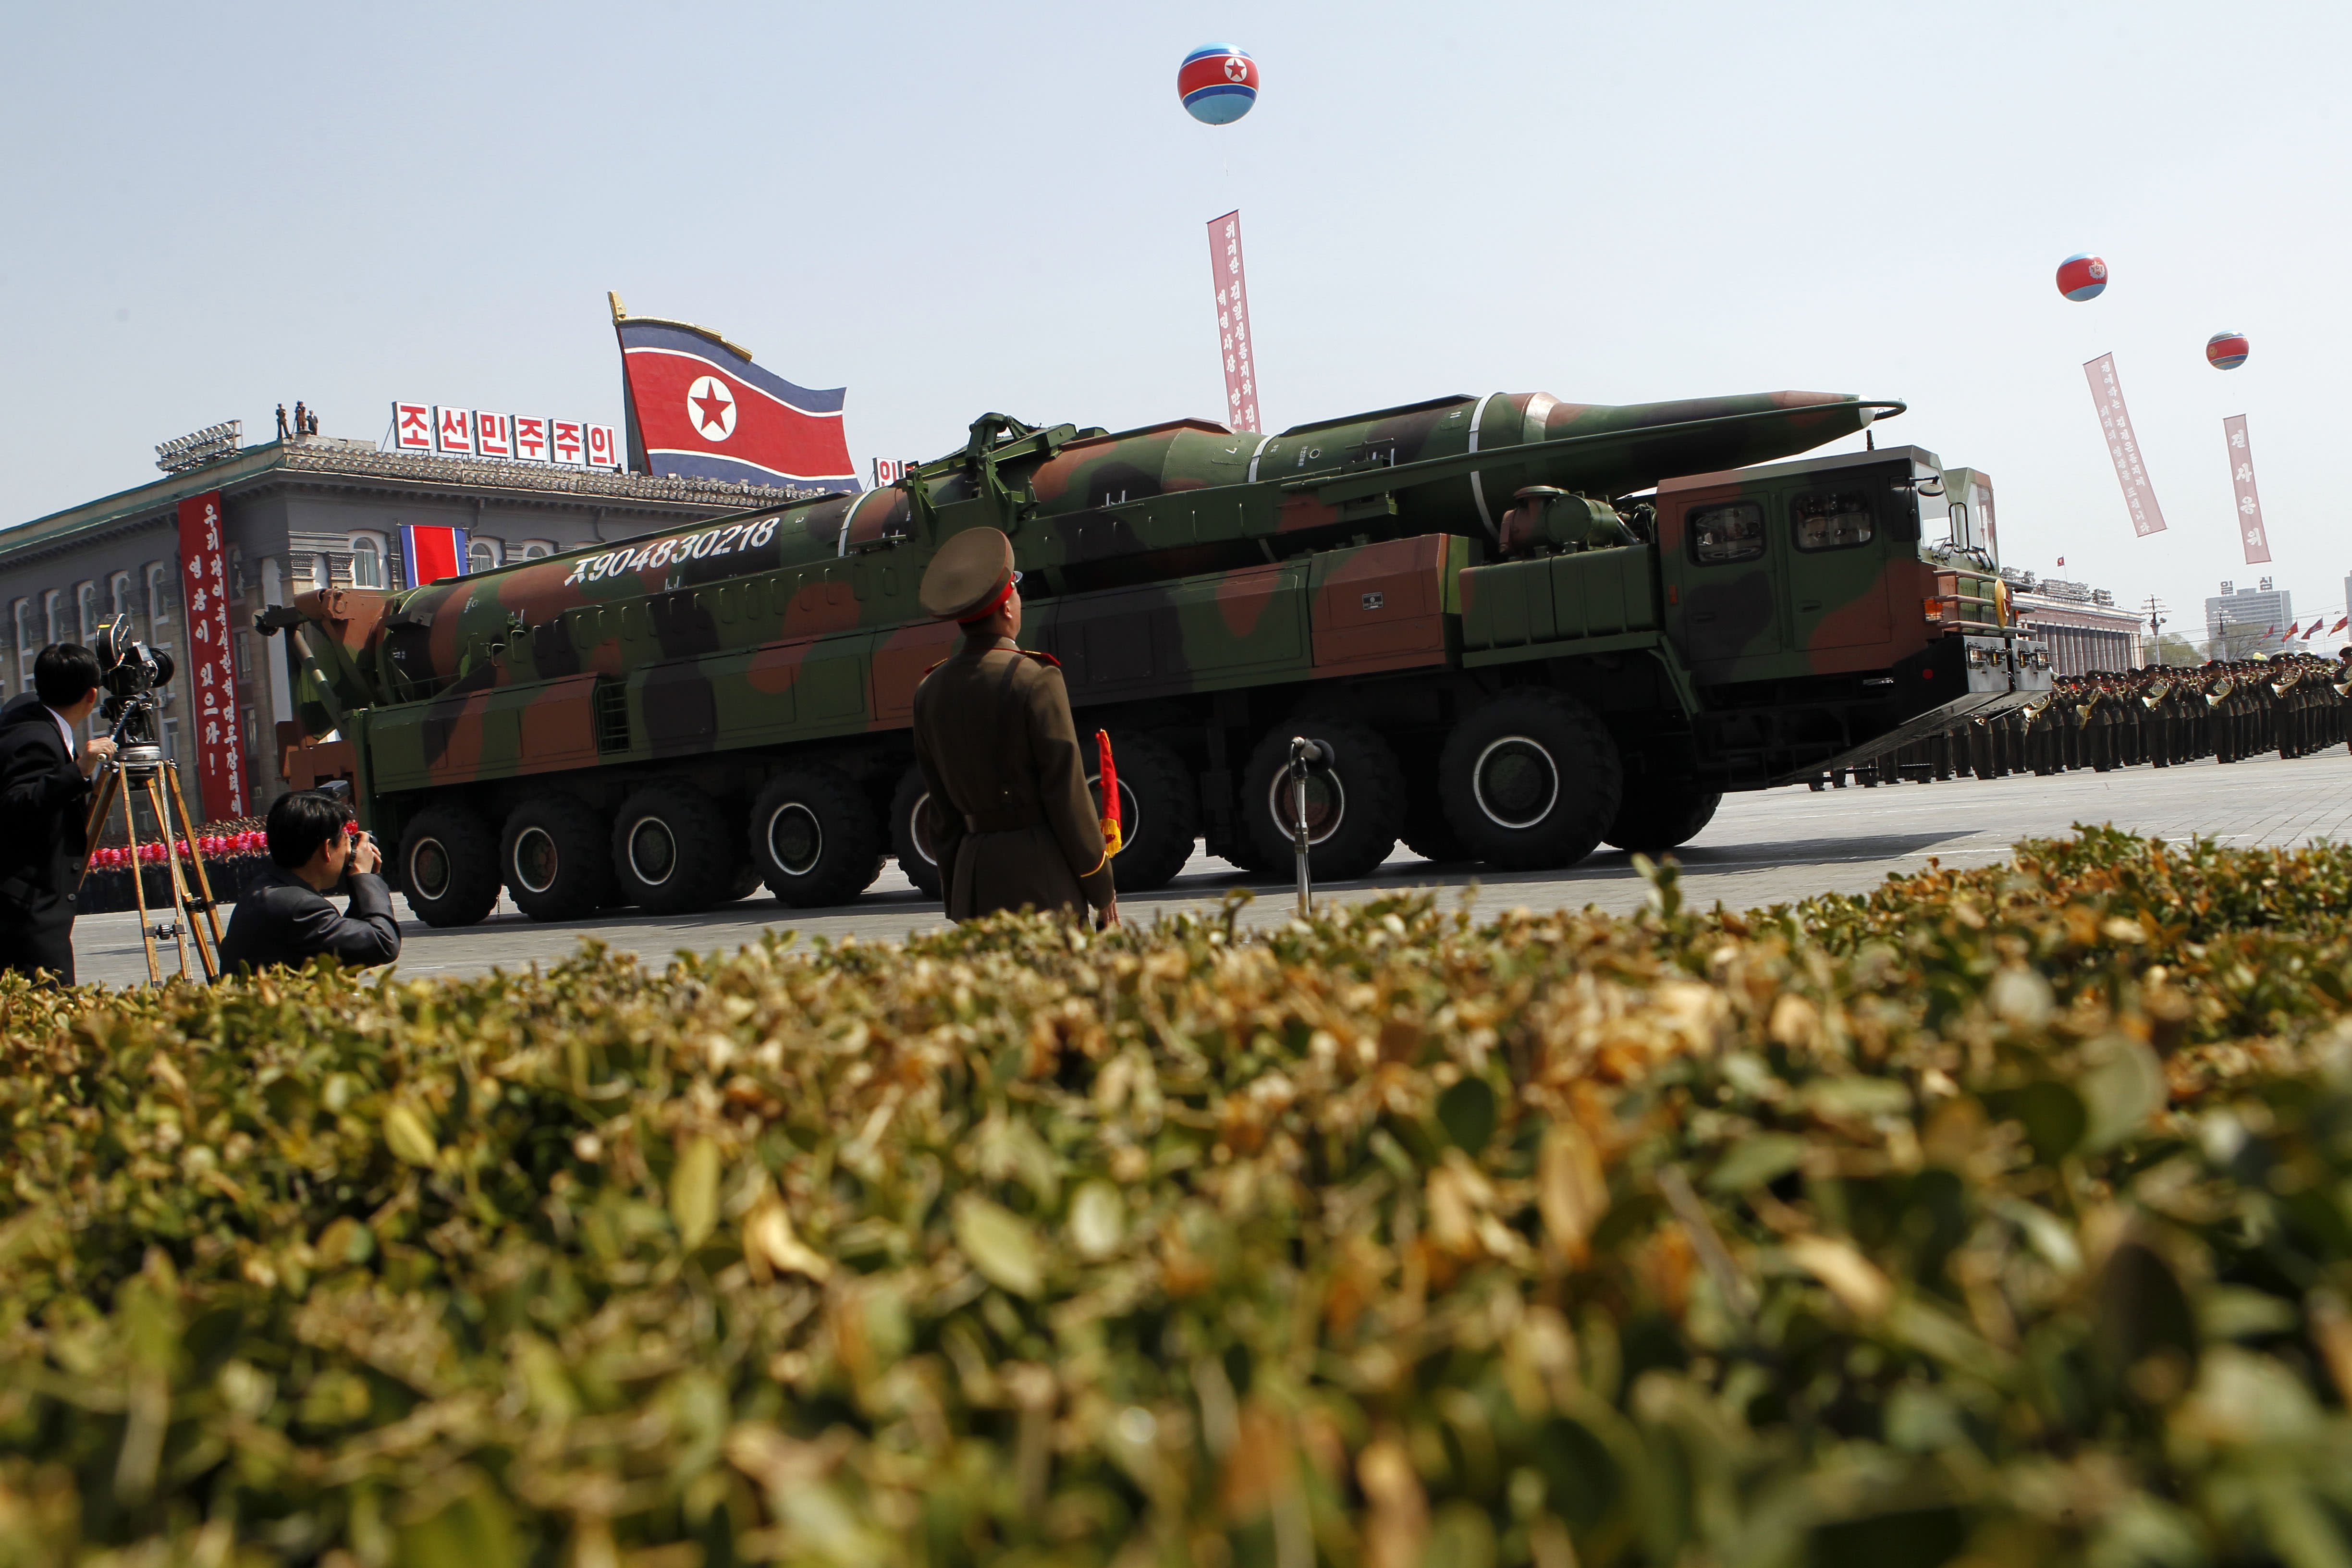 A North Korean vehicle carrying what appears to be a new missile passes by during a mass military parade in the Kim Il Sung Square in Pyongyang, to celebrate 100 years since the birth of the late North Korean founder Kim Il Sung on Sunday, April 15, 2012. North Korean leader Kim Jong Un delivered his first public televised speech Sunday, just two days after a failed rocket launch, portraying himself as a strong military chief unafraid of foreign powers during festivities meant to glorify his grandfather. (AP Photo/Ng Han Guan)